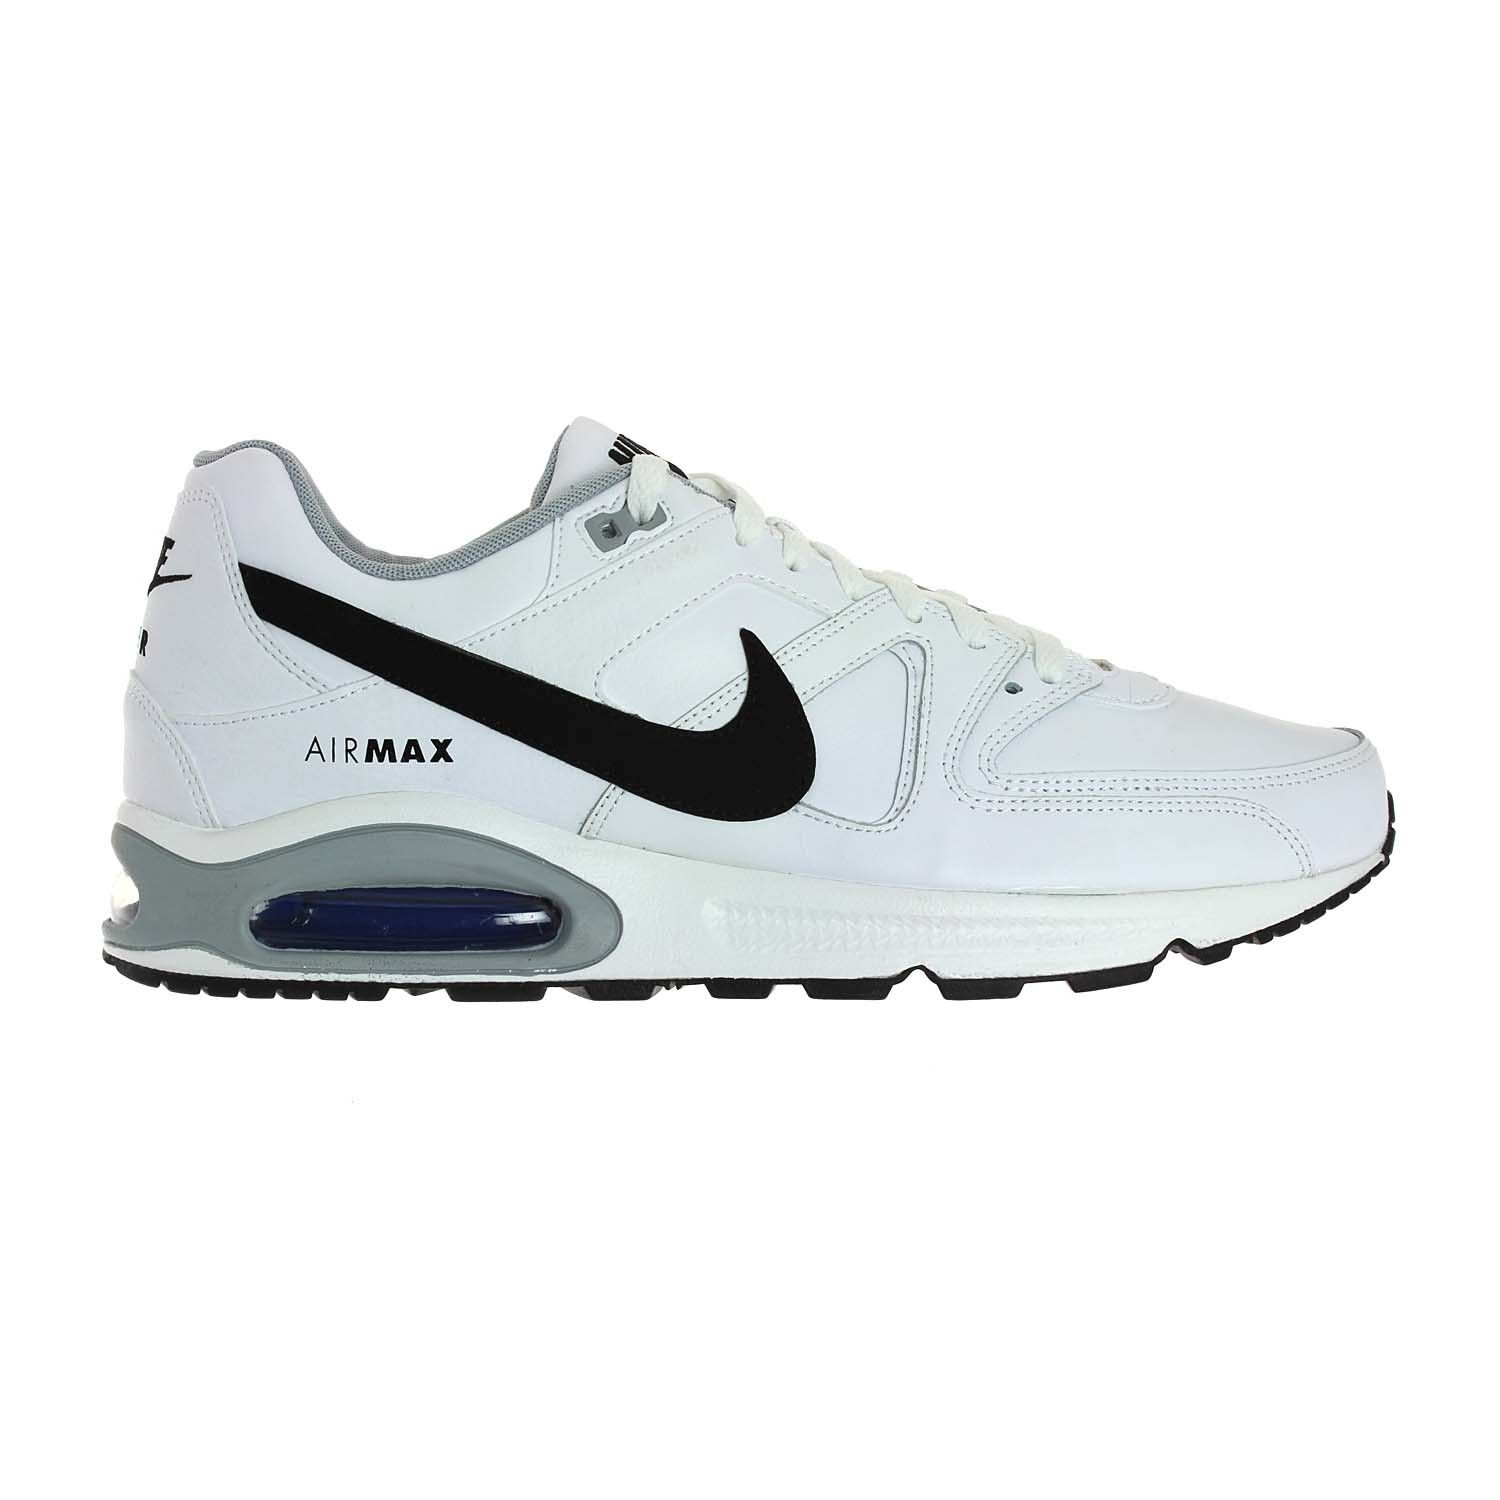 Nike Commande Air Max Mens Pantalon Blanc Mastercard super vente 100% garanti commercialisable JuEAbt